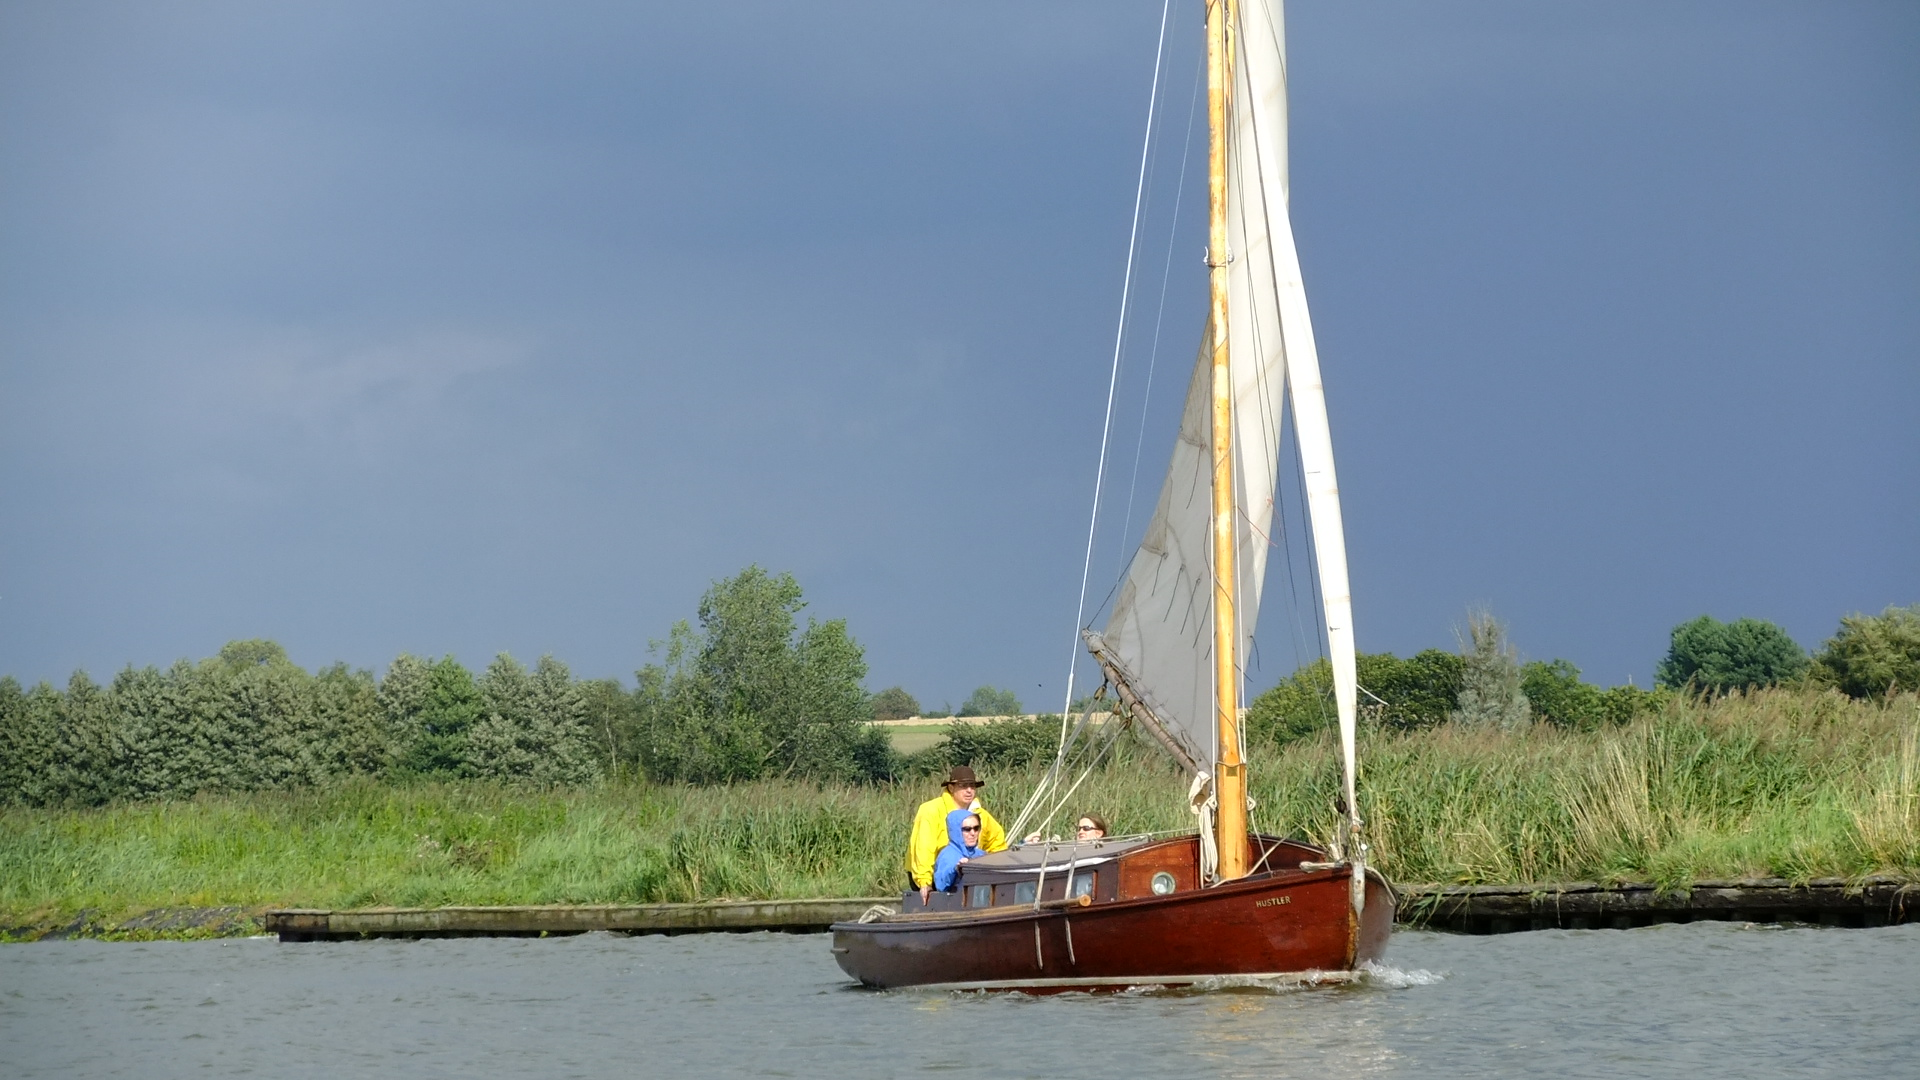 Norfolk Broads, superb boating & sailing